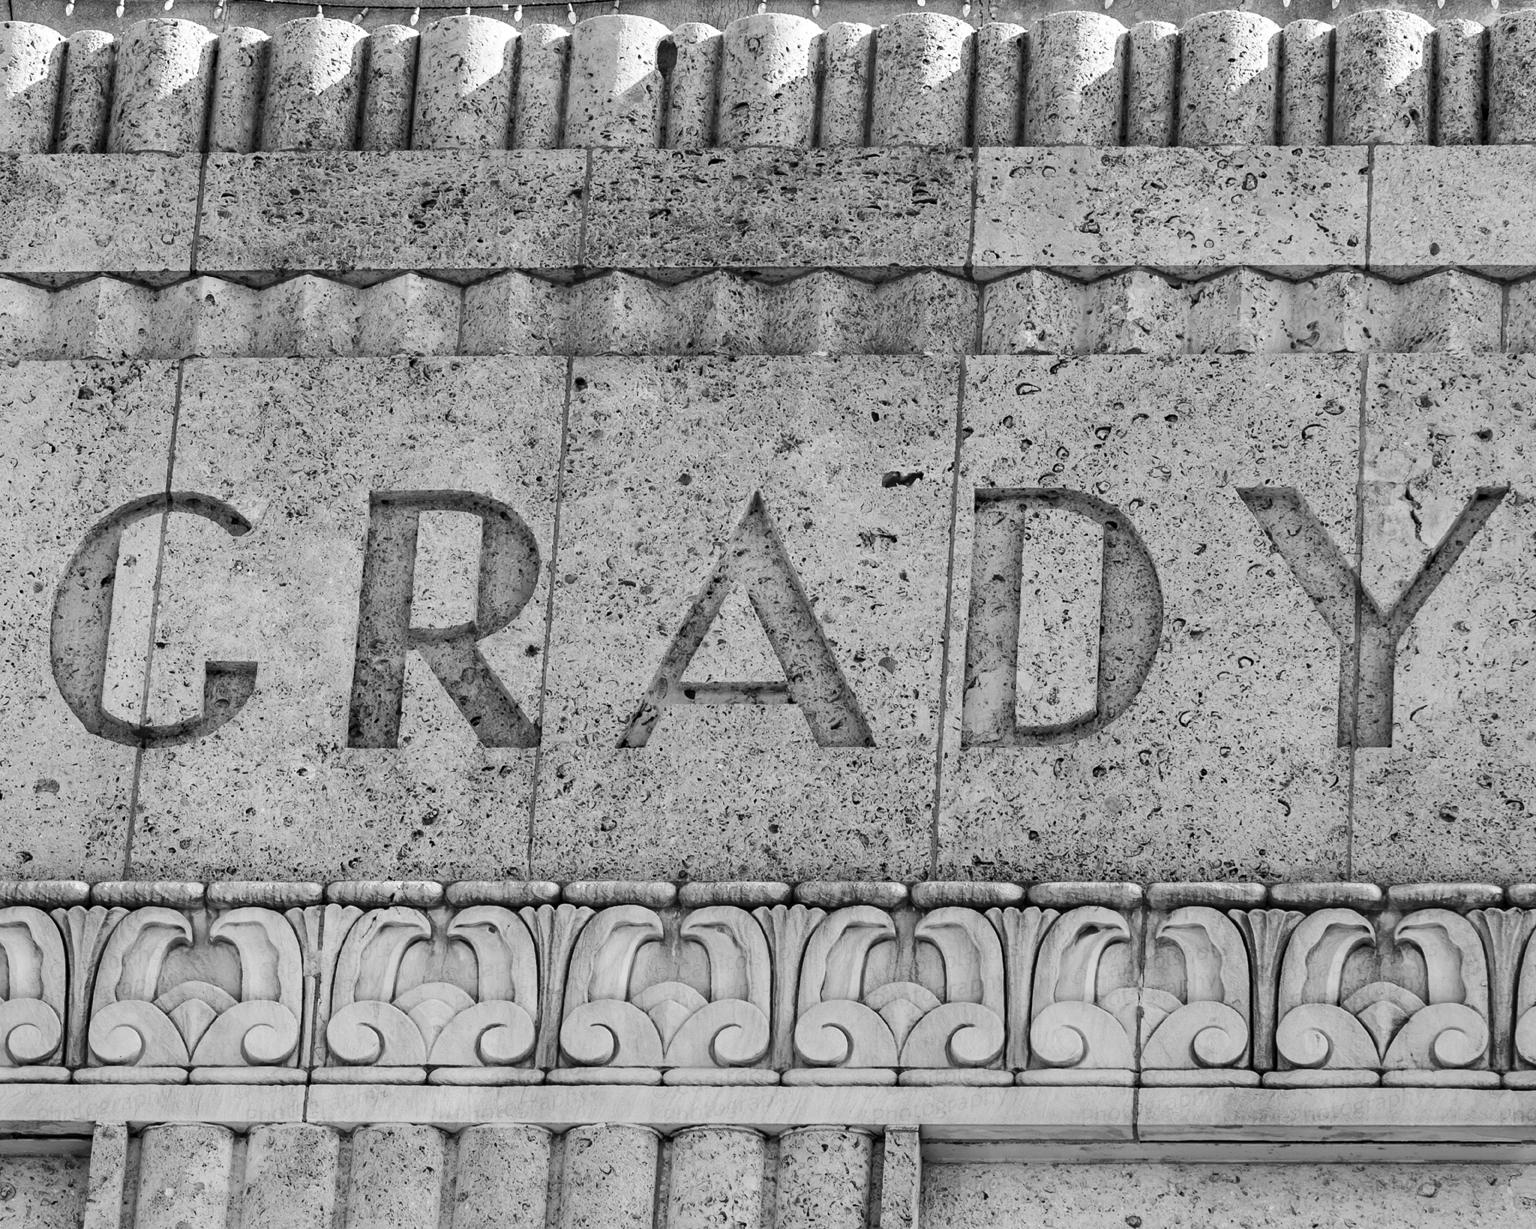 grady county Quickfacts grady county, georgia quickfacts provides statistics for all states and counties, and for cities and towns with a population of 5,000 or more.